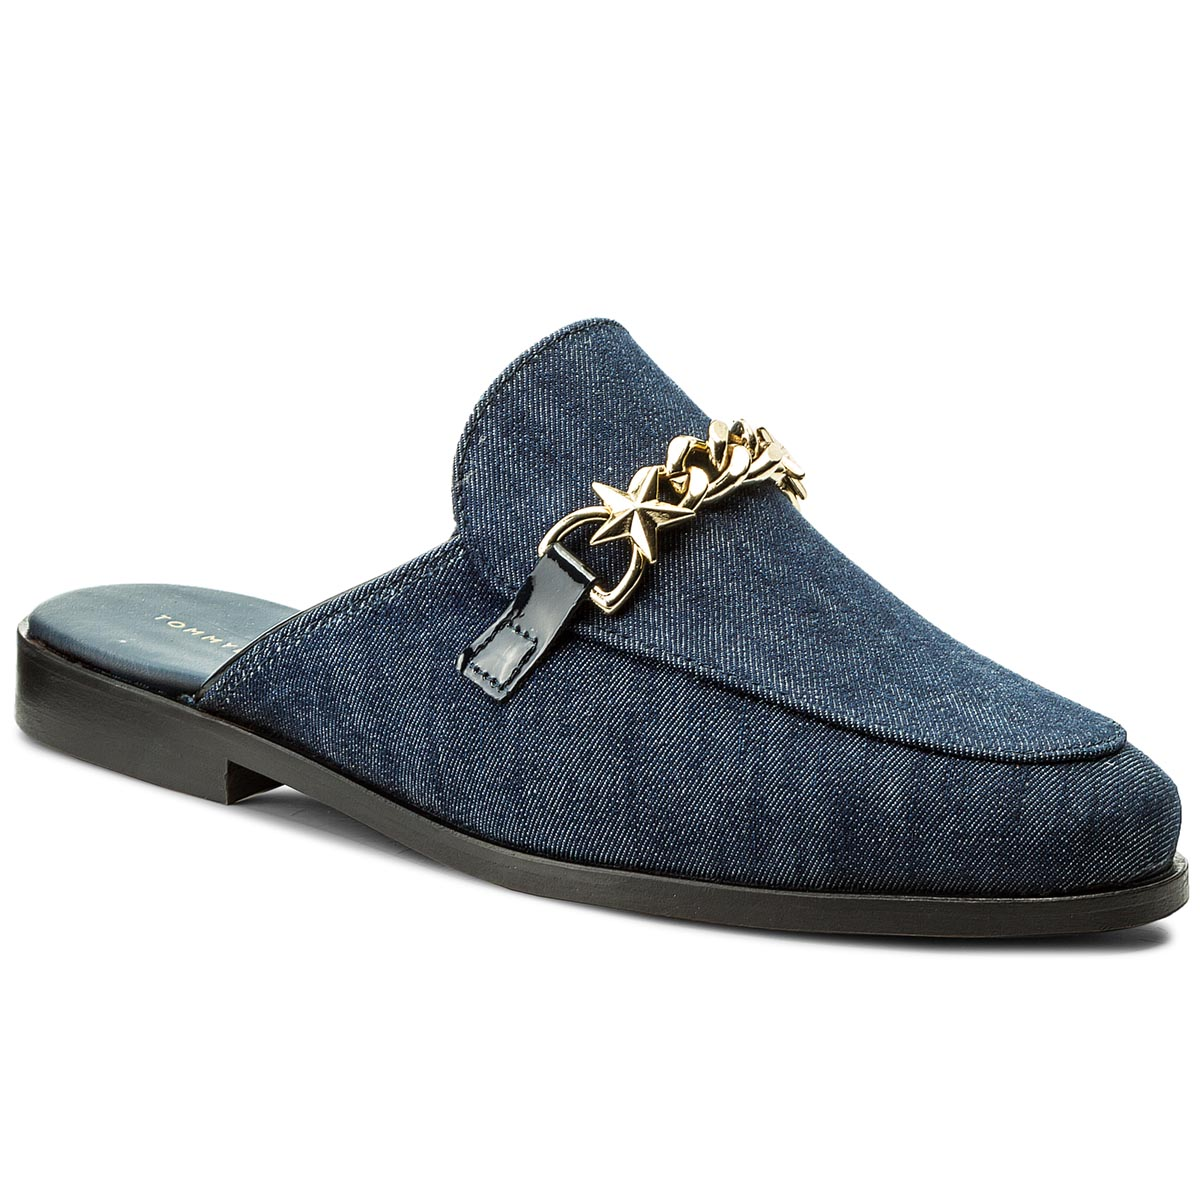 Klapki TOMMY HILFIGER - Feminine Denim Slip On Loafer Ch FW0FW02724  Tommy Navy 406